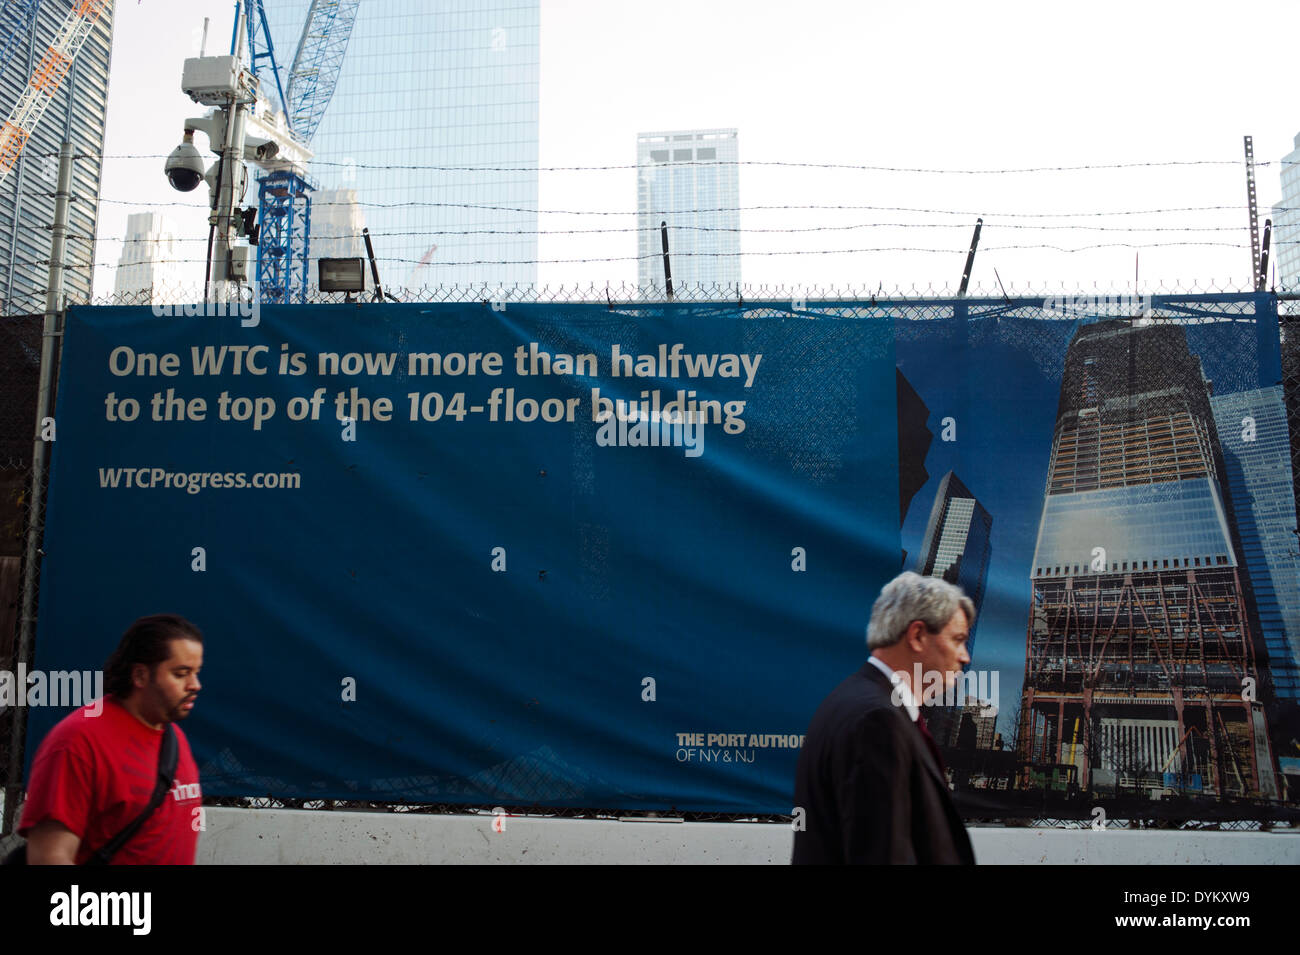 Construction on the new 'One World Trade Center' 1 WTC in lower Manhattan, New York City - Stock Image